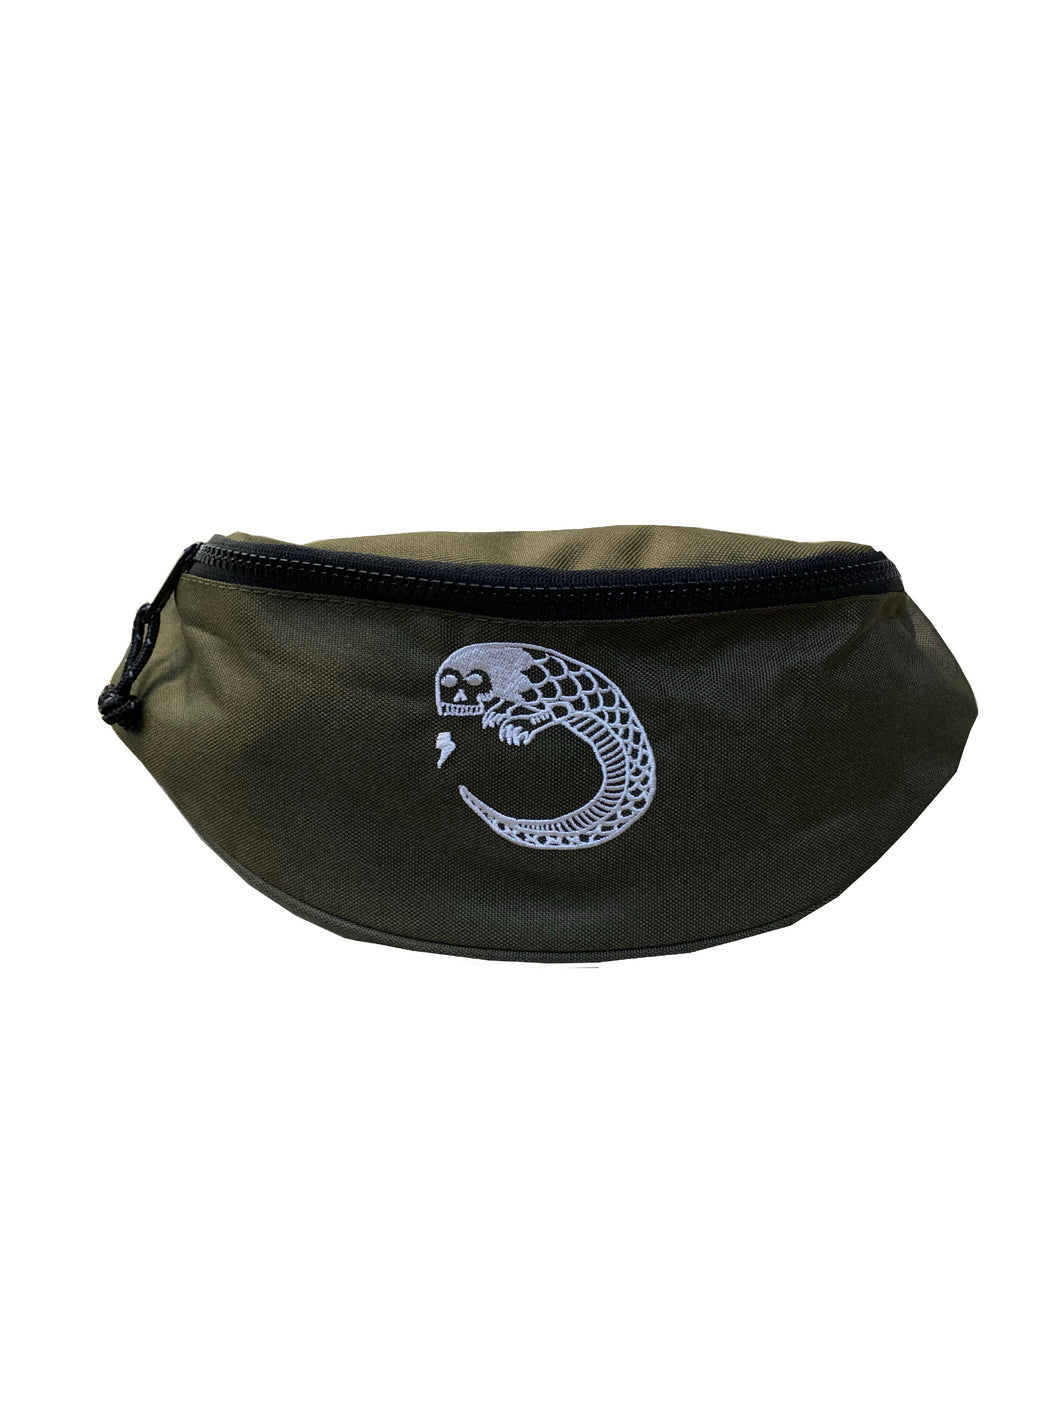 James Enox Scull Snake waist bag Army Green